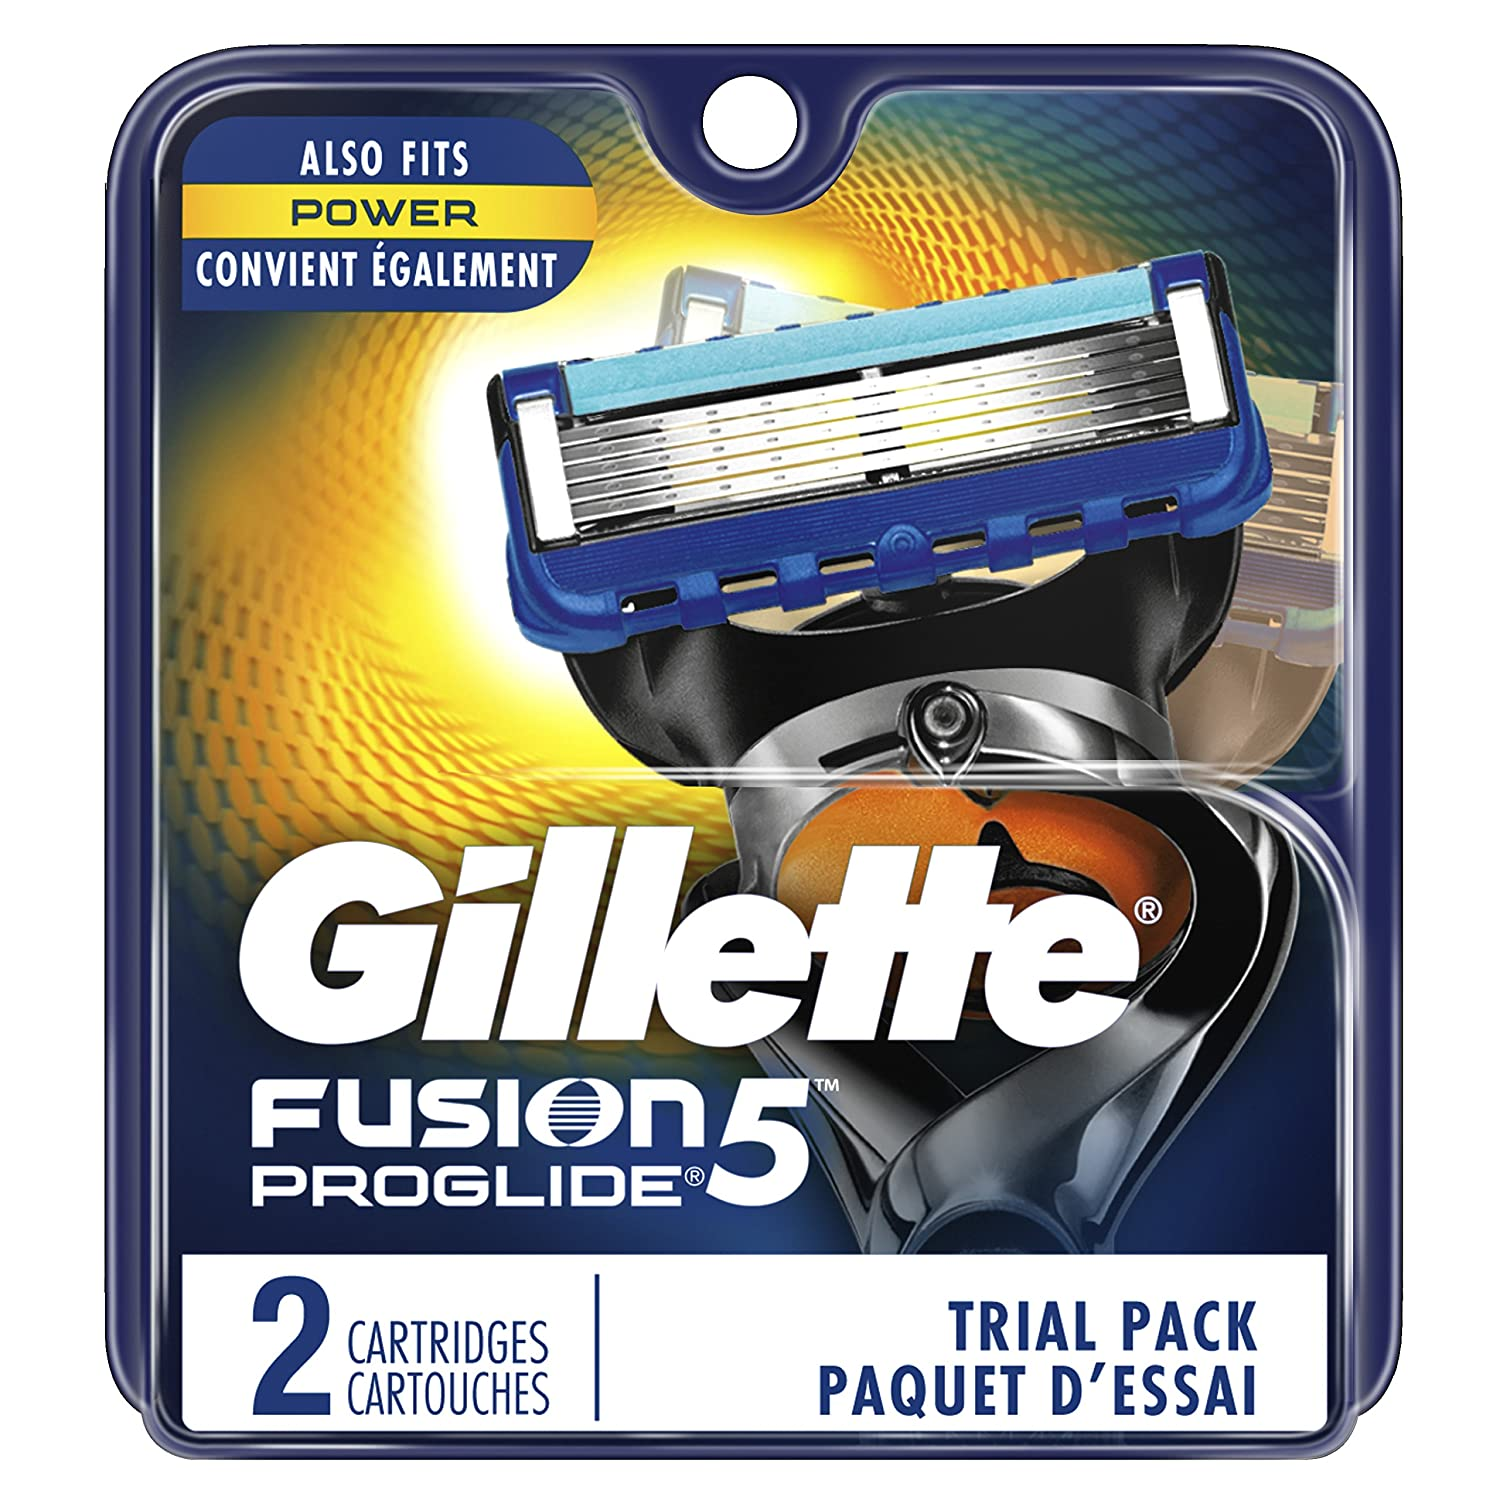 Gillette Fusion ProGlide Manual Men's Razor Blade Refills 2-Count, 0.04-Pound- Packaging May Vary